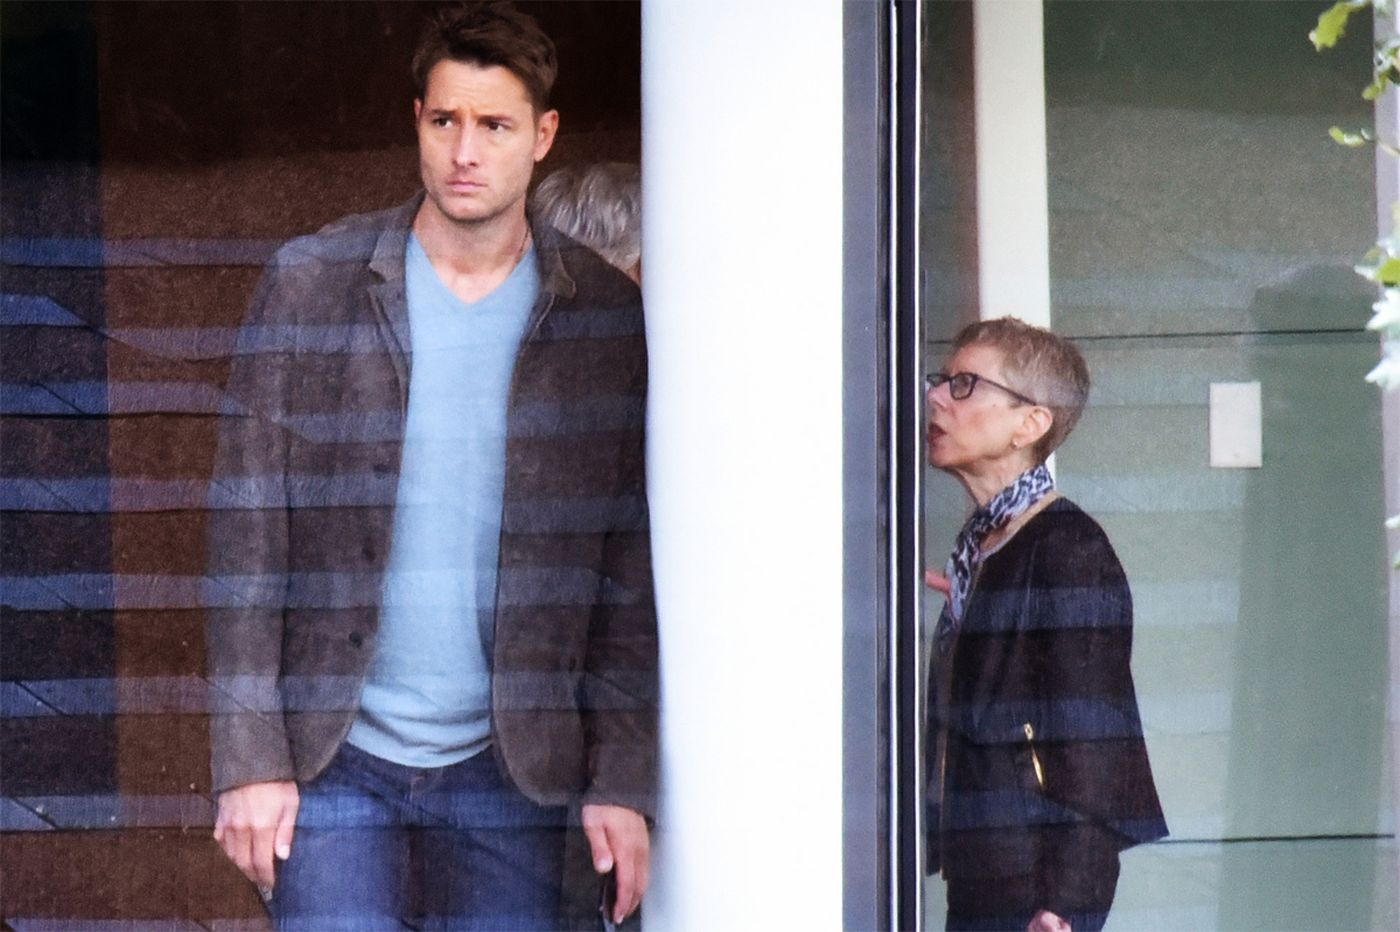 NBC's 'This Is Us' films scene at WHYY studios, Terry Gross makes an appearance